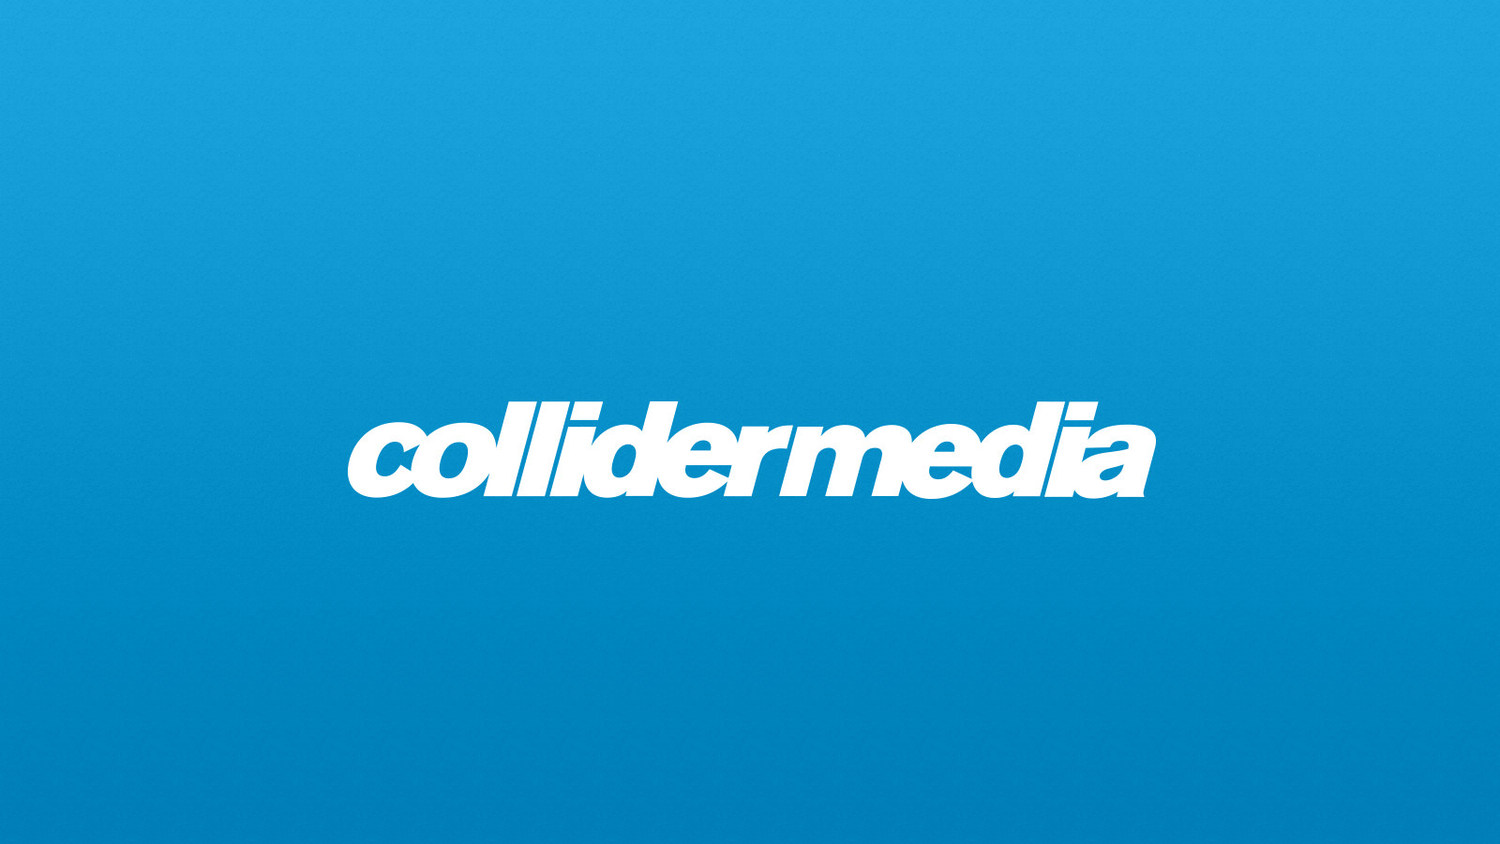 collider_media_logo.jpeg